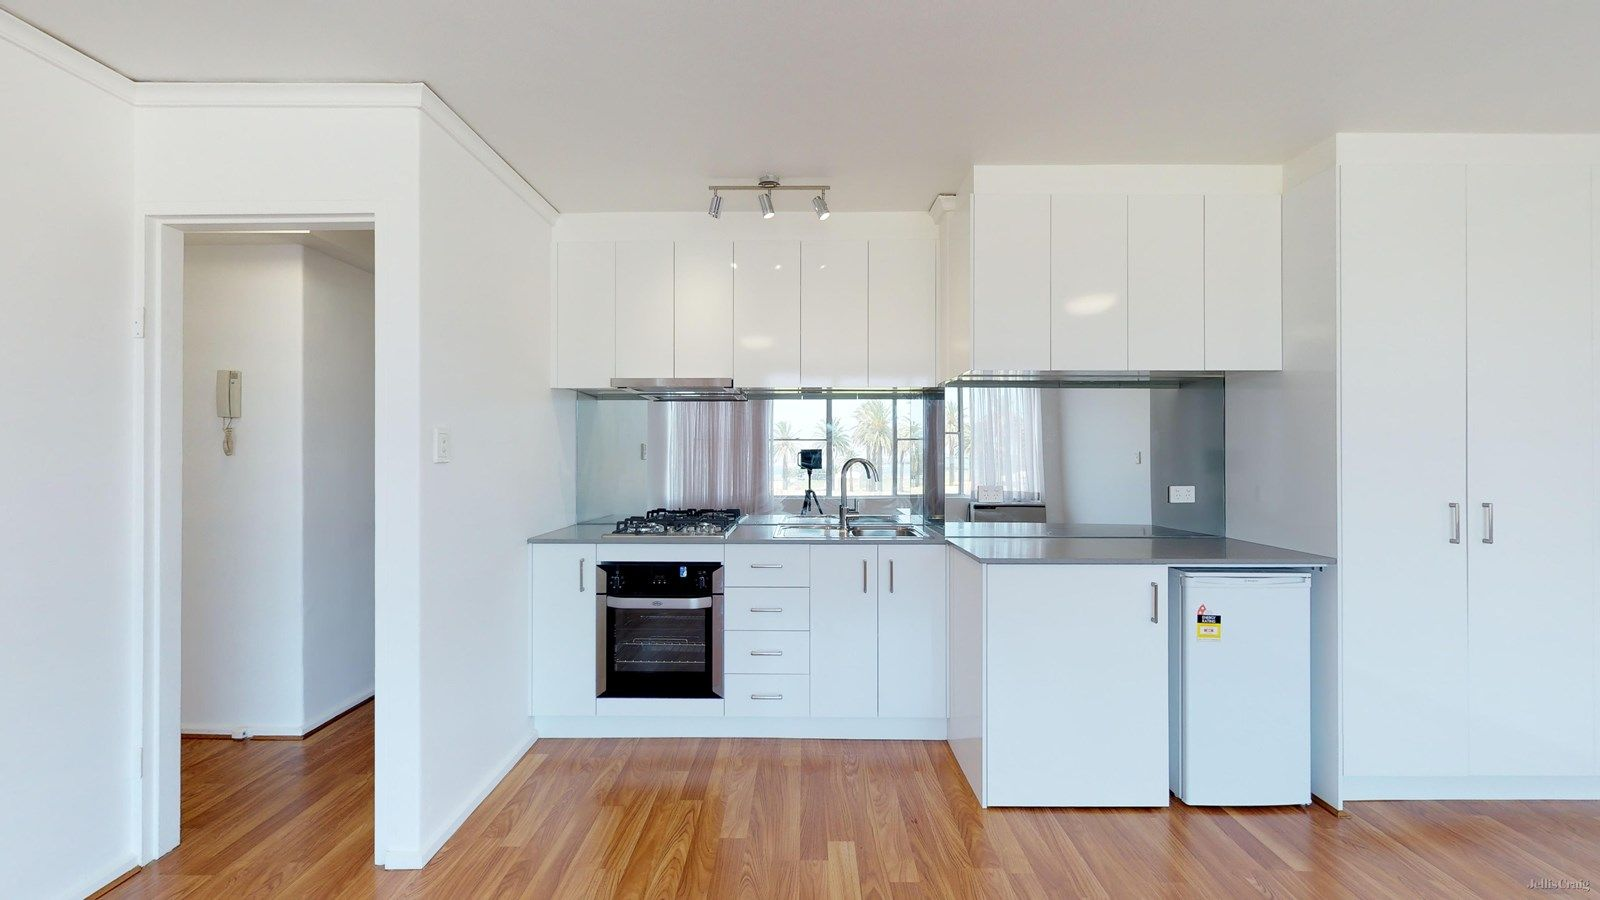 4/350 Beaconsfield Parade, St Kilda West VIC 3182, Image 1